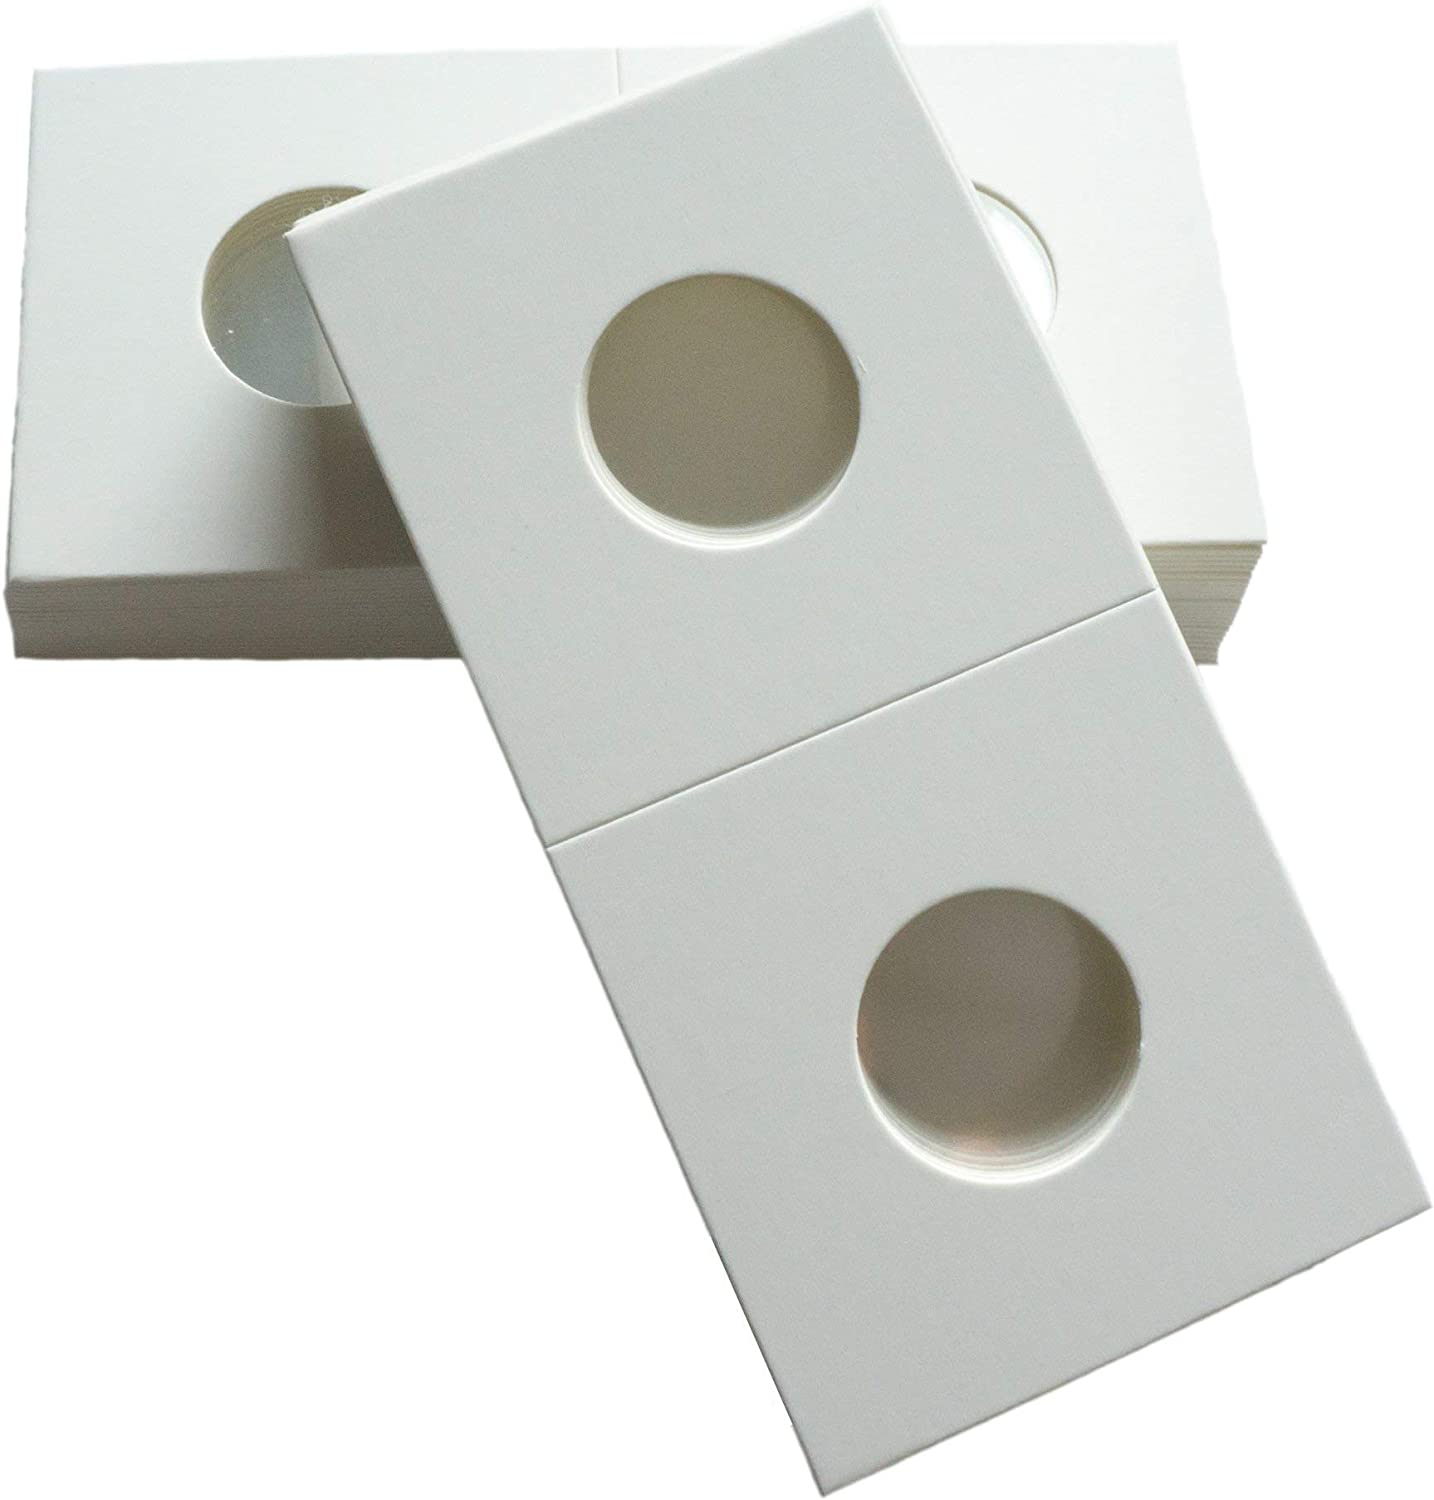 100 Guardhouse Cent//Penny 2x2 Paper Staple Coin Holder Quality and Safety